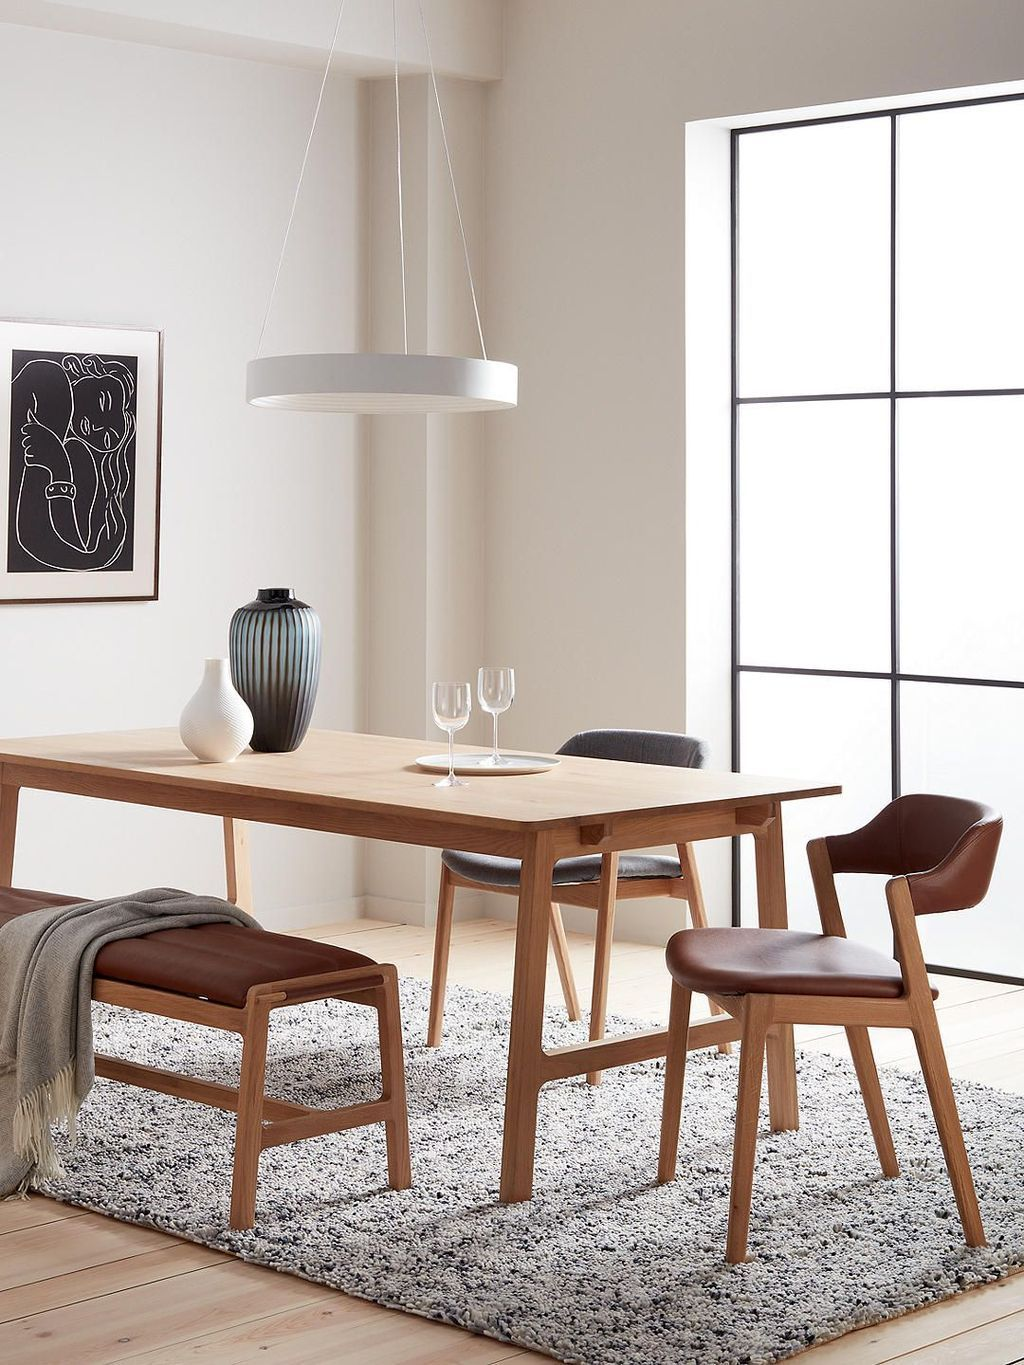 34 Stunning Contemporary Dining Chairs Design Ideas In 2020 Dining Table With Bench Contemporary Dining Chair Design Dining Chair Design